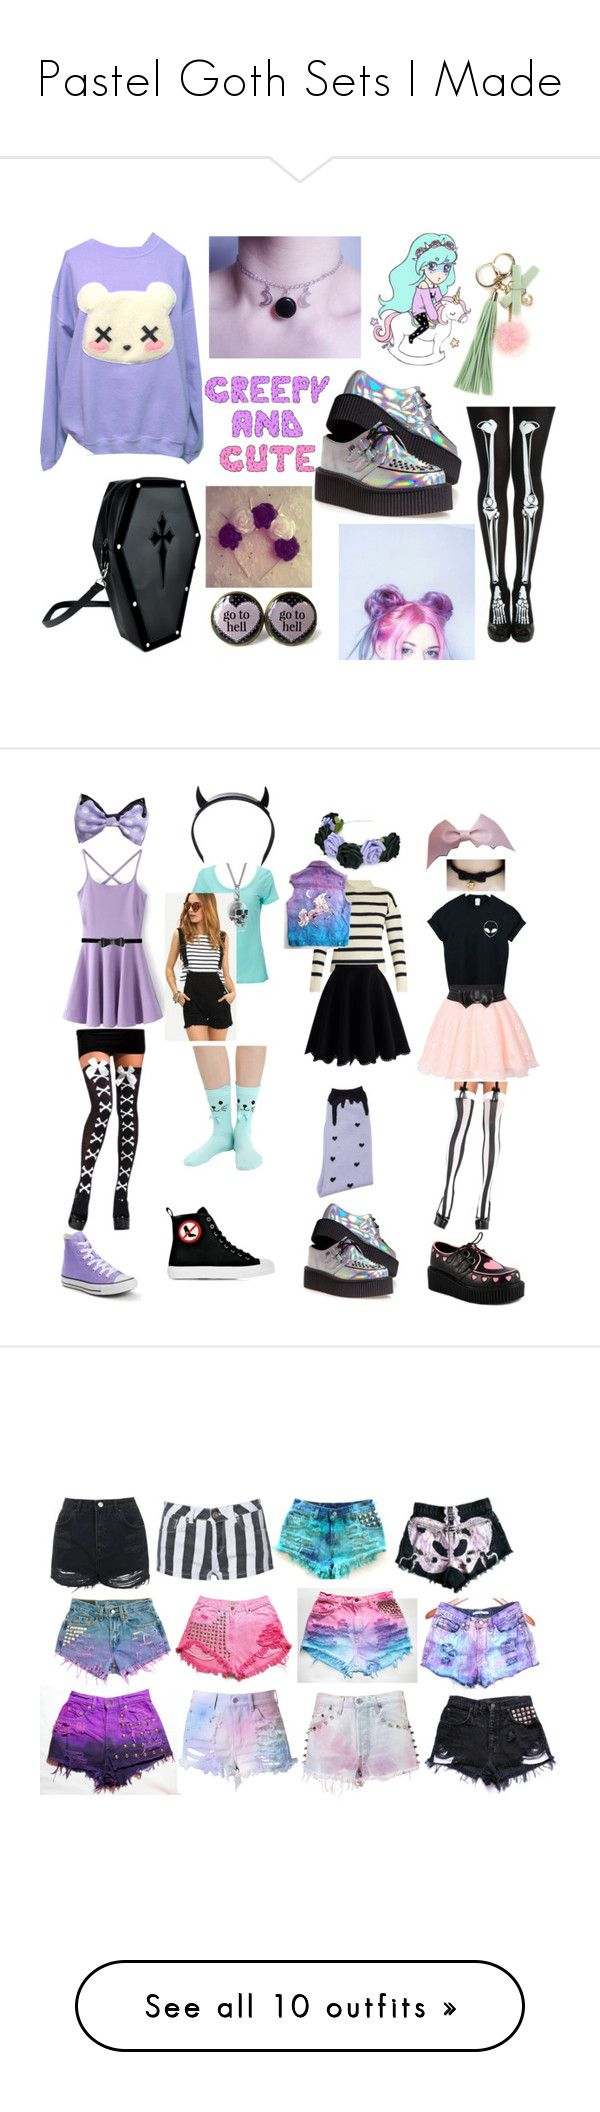 """Pastel Goth Sets I Made"" by becauseamazingness ❤ liked on Polyvore featuring T.U.K., cutekawaii, Converse, Simplex Apparel, Black Pearl, Club Exx, Moschino, Alice + Olivia, Migh T By Kumiko Watari and Tabula Rasa"